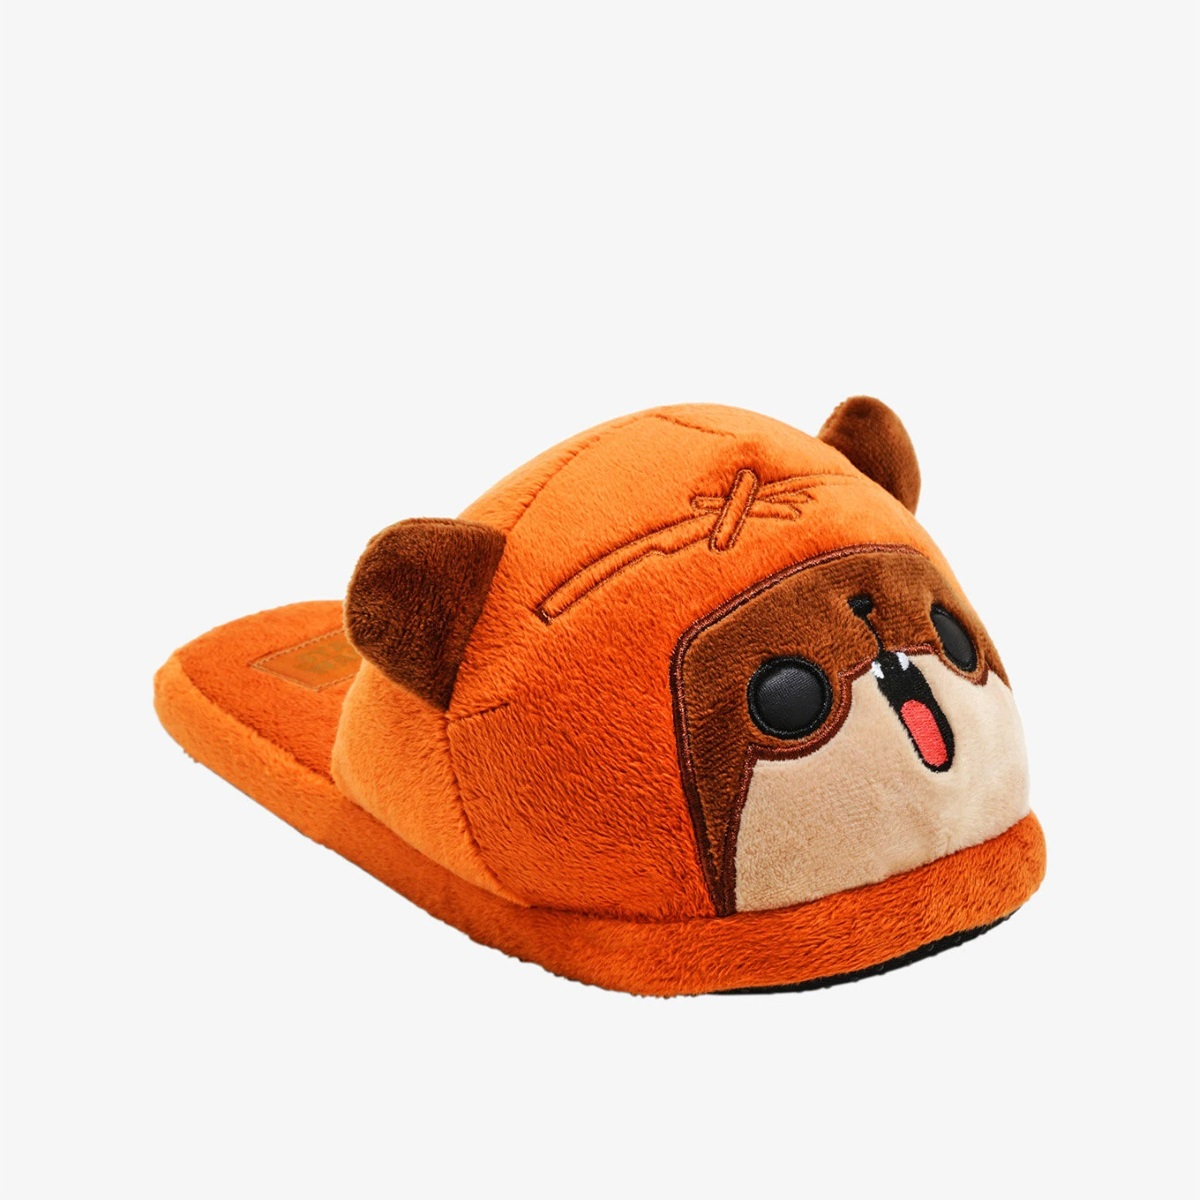 Star Wars Wicket Ewok Slippers at Box Lunch